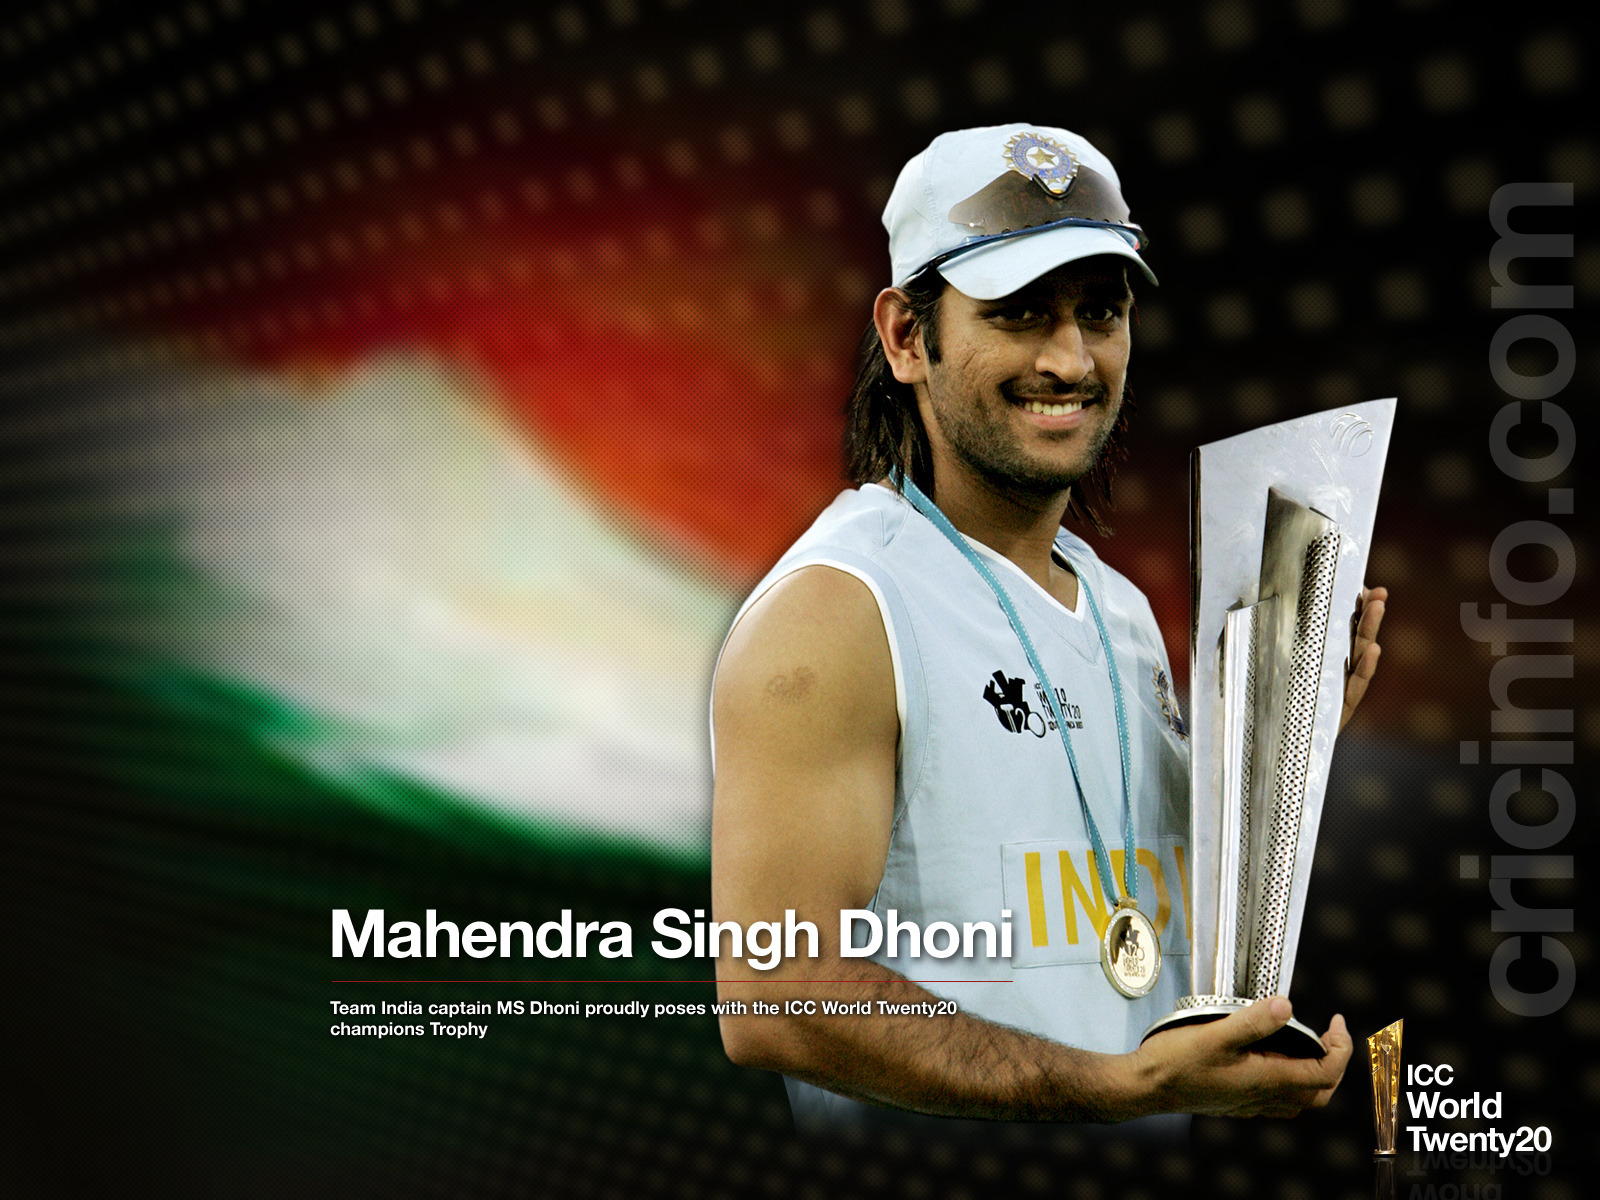 MS Dhoni Poses With The T20 Trophy